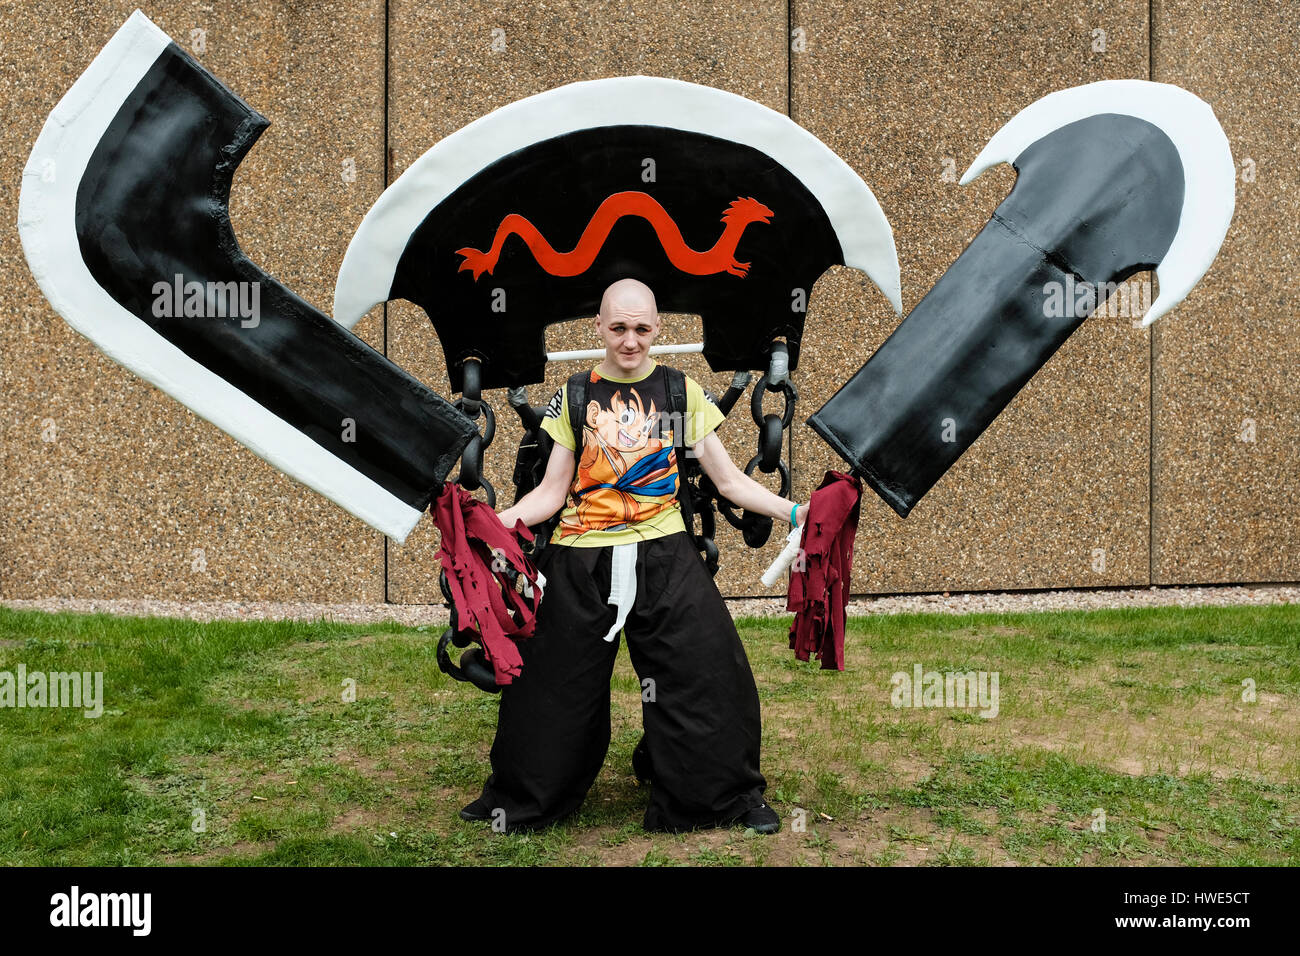 Young man attending MCM Comic Con, Birmingham, UK 2017 in character costume - Stock Image